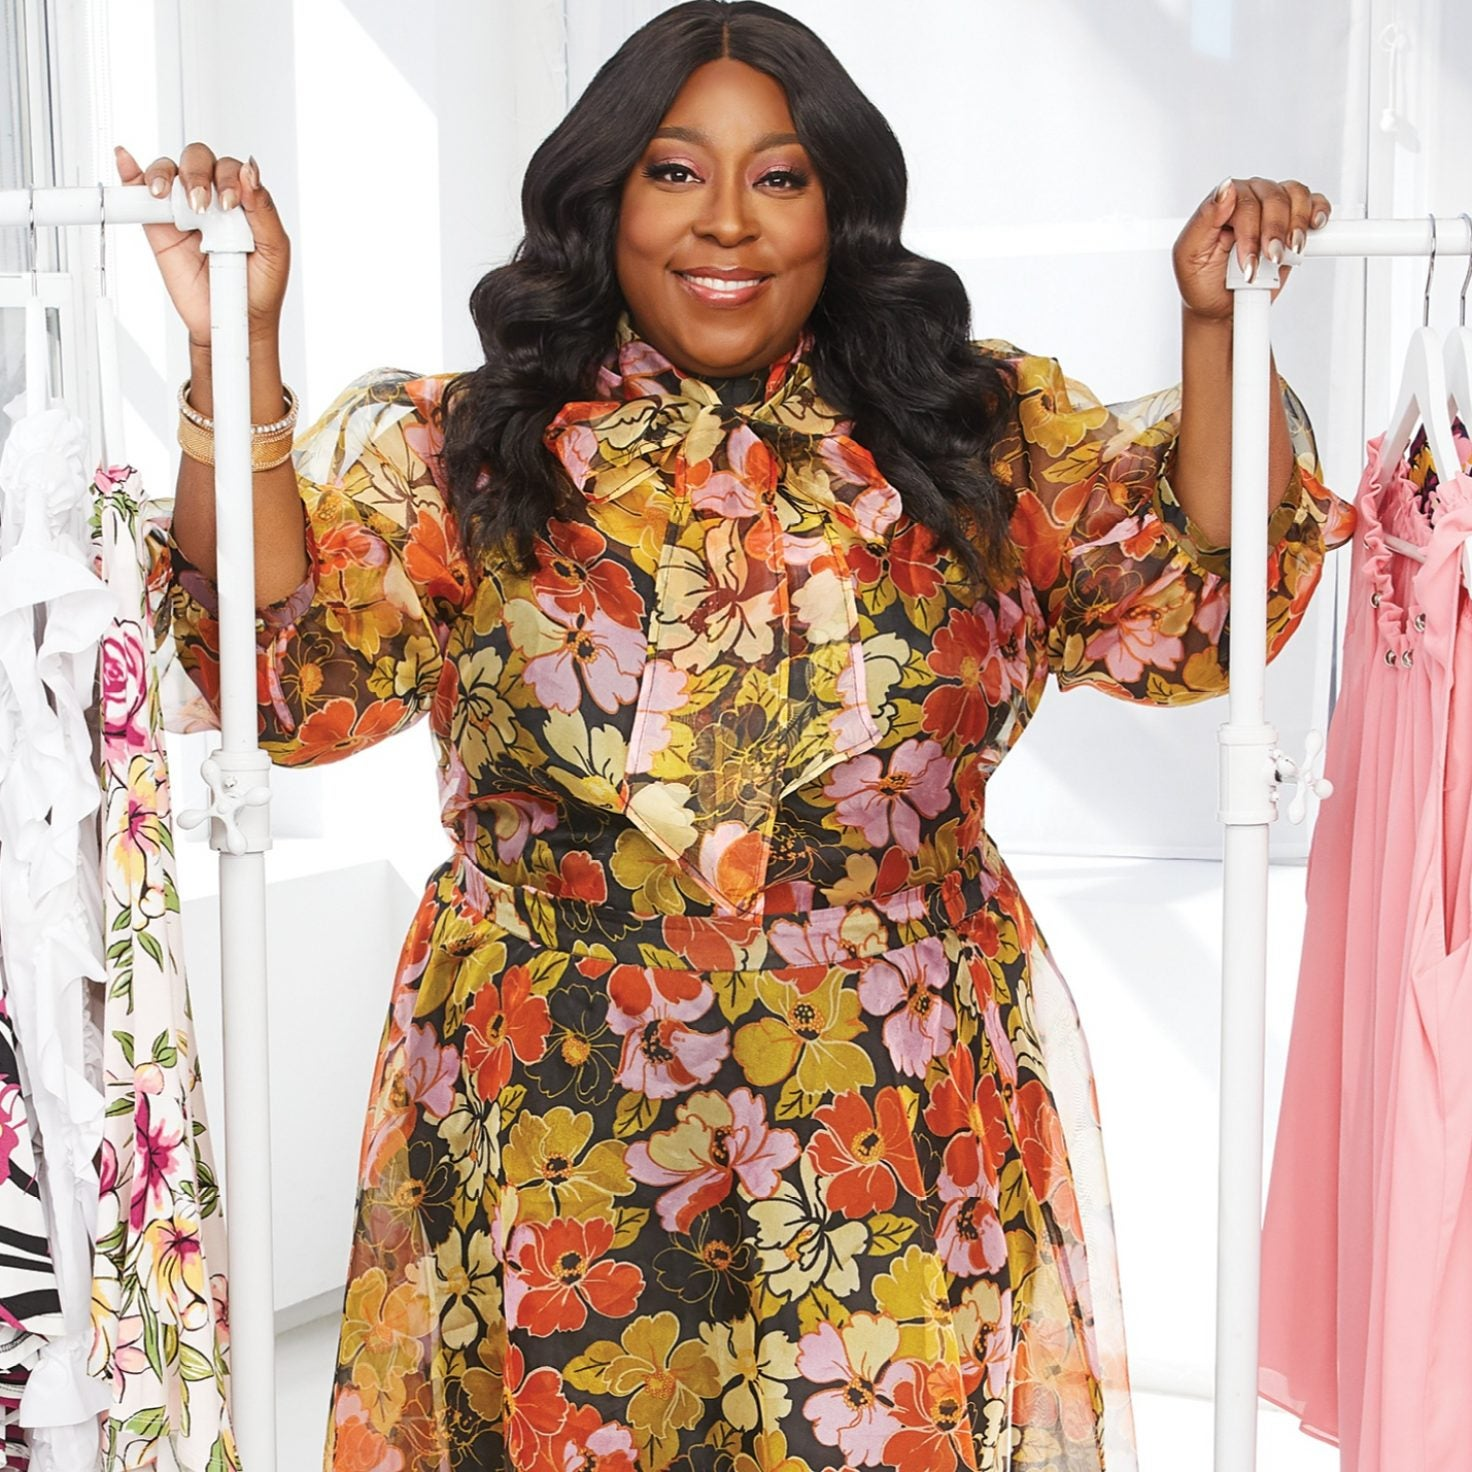 The Ashley Stewart x Loni Love Spring 2020 Collection Is Here